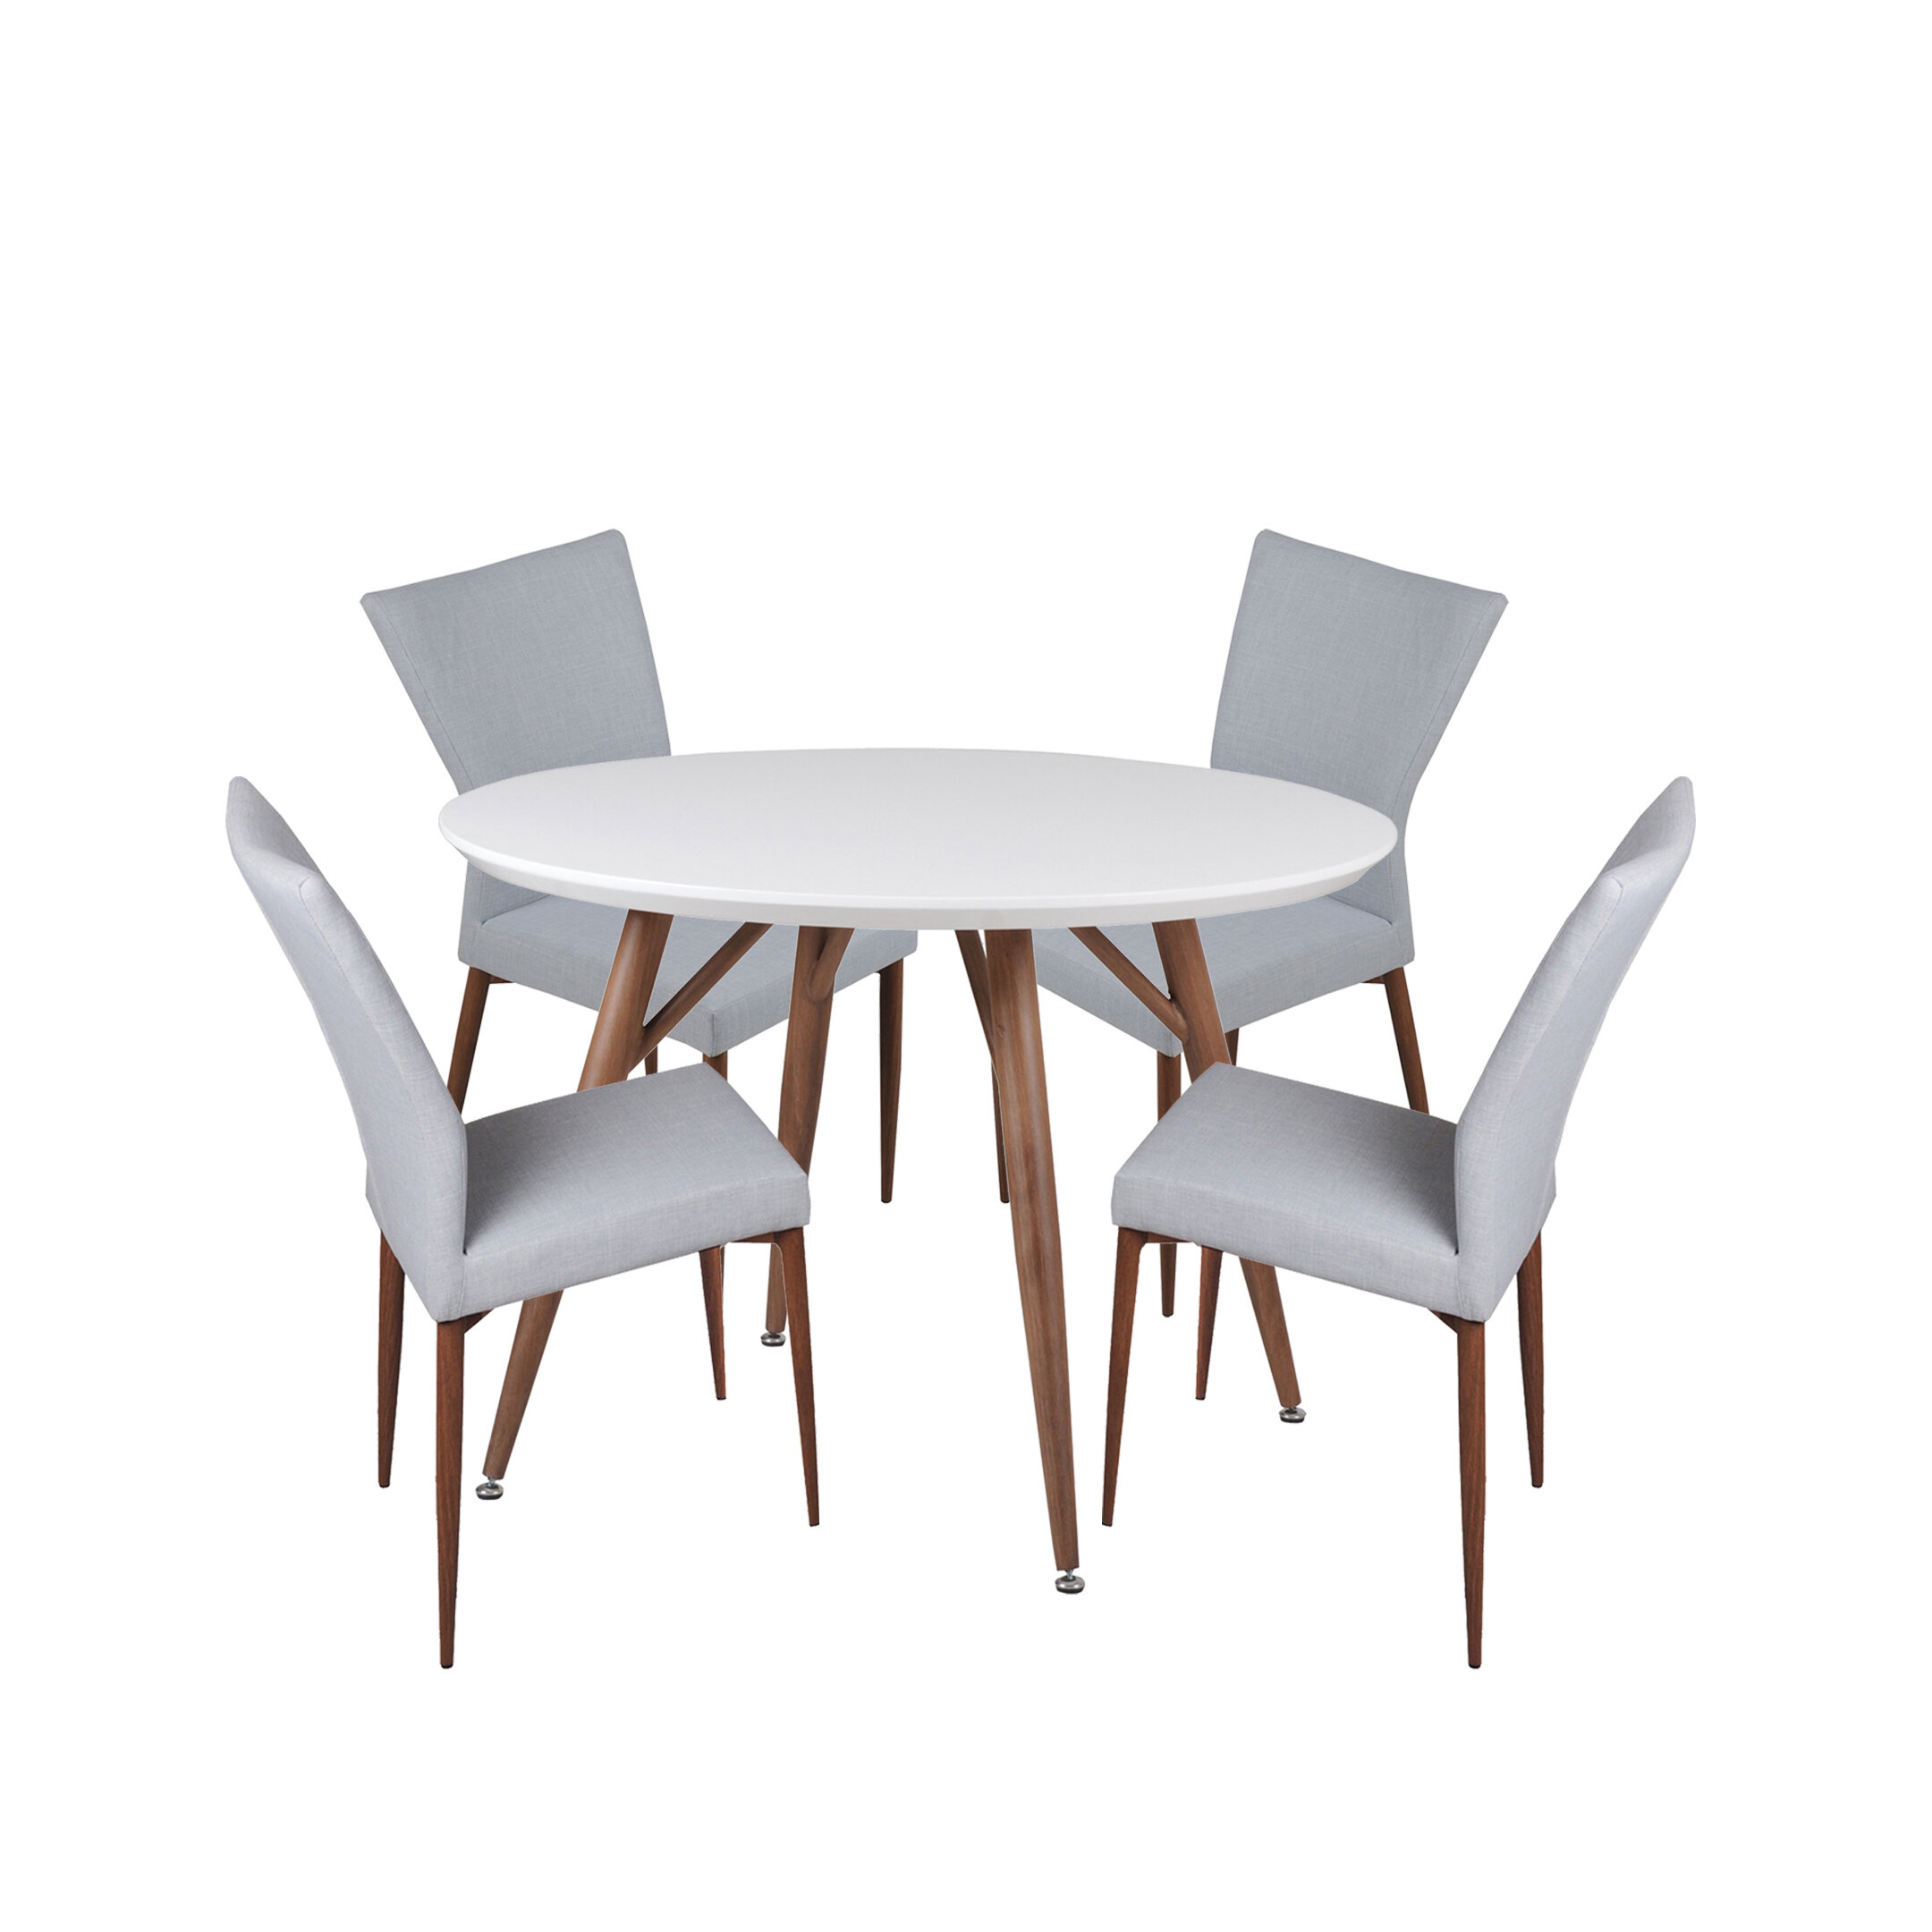 Fashionable 5 Piece Breakfast Nook Dining Sets Regarding Corrigan Studio Brandyn 5 Piece Breakfast Nook Dining Set (#8 of 20)